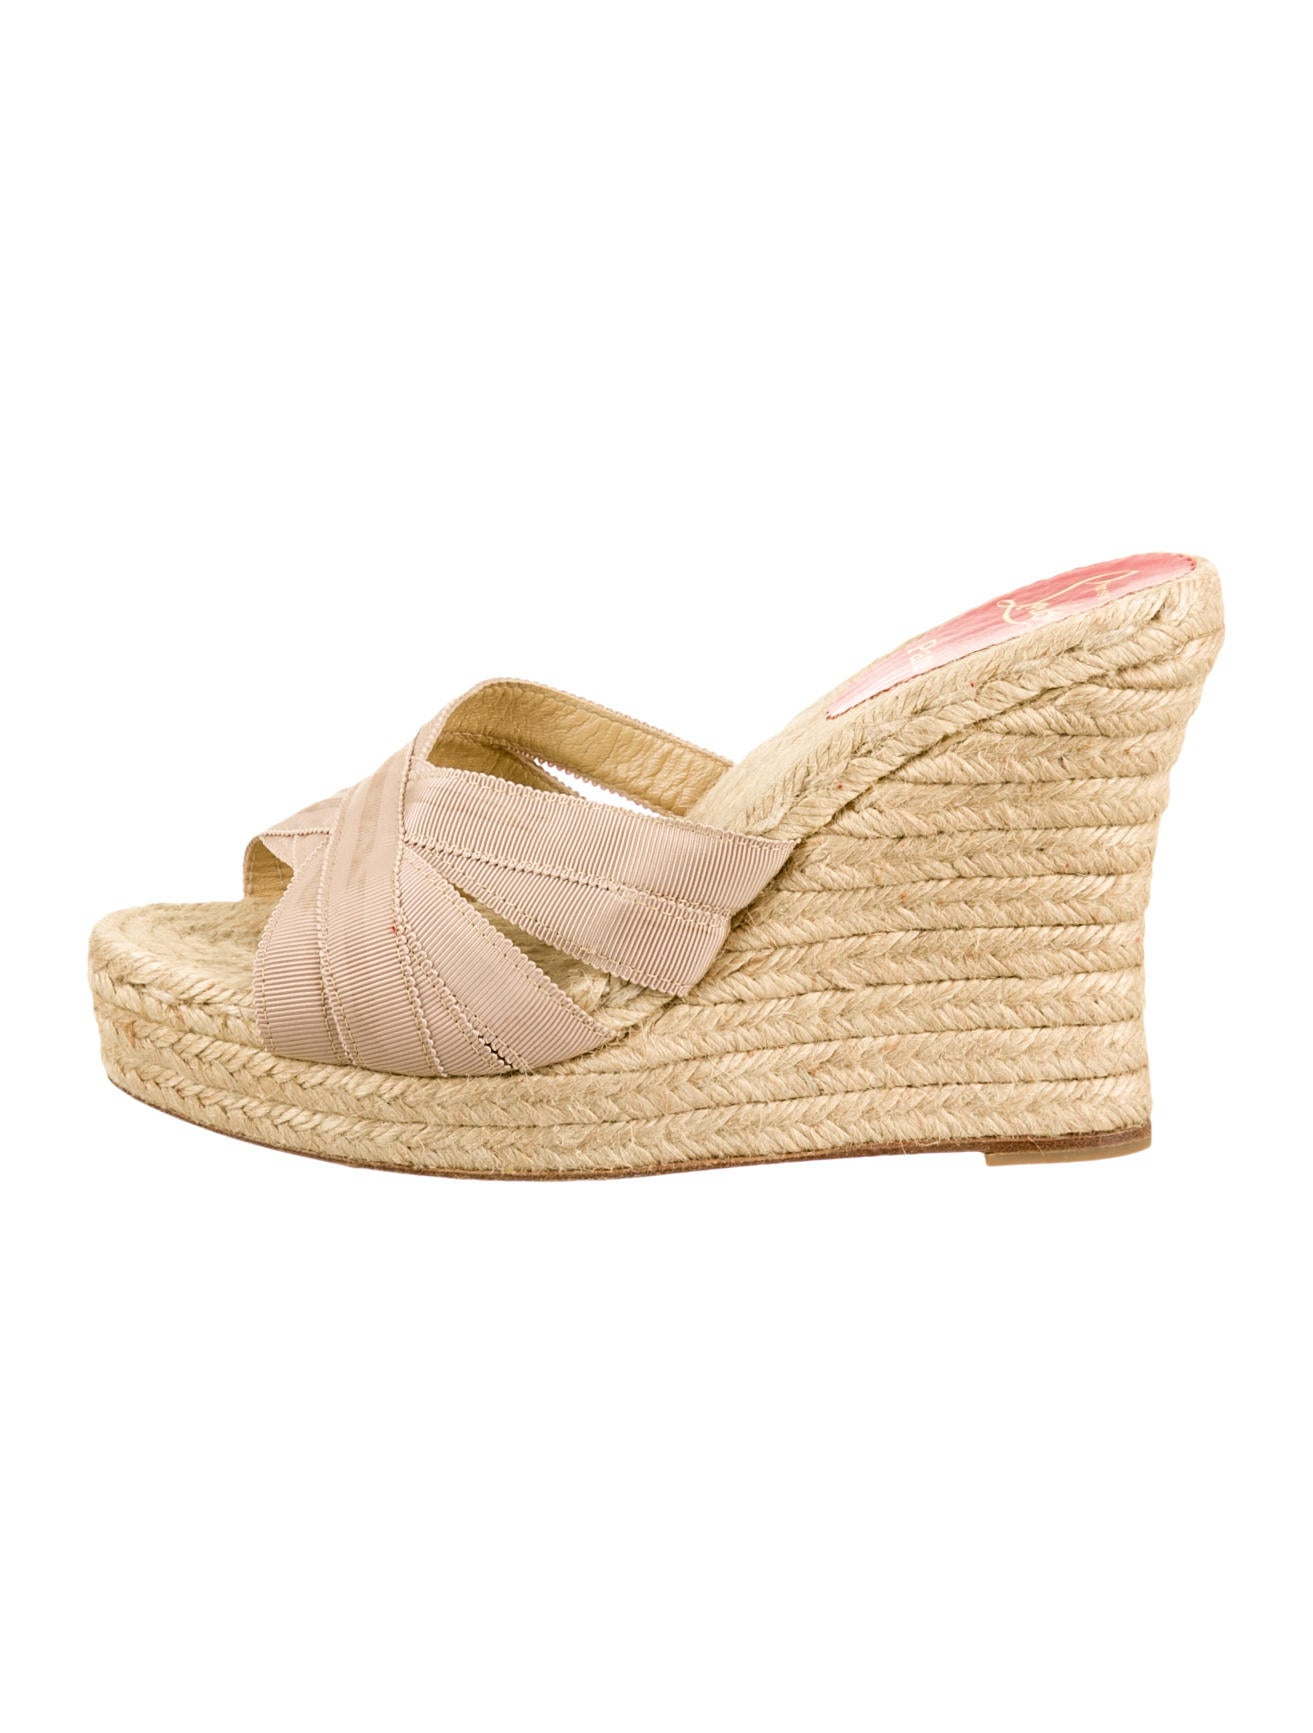 replica christian louboutin shoes - christian louboutin round-toe wedges Nude ribbon | The Little Arts ...